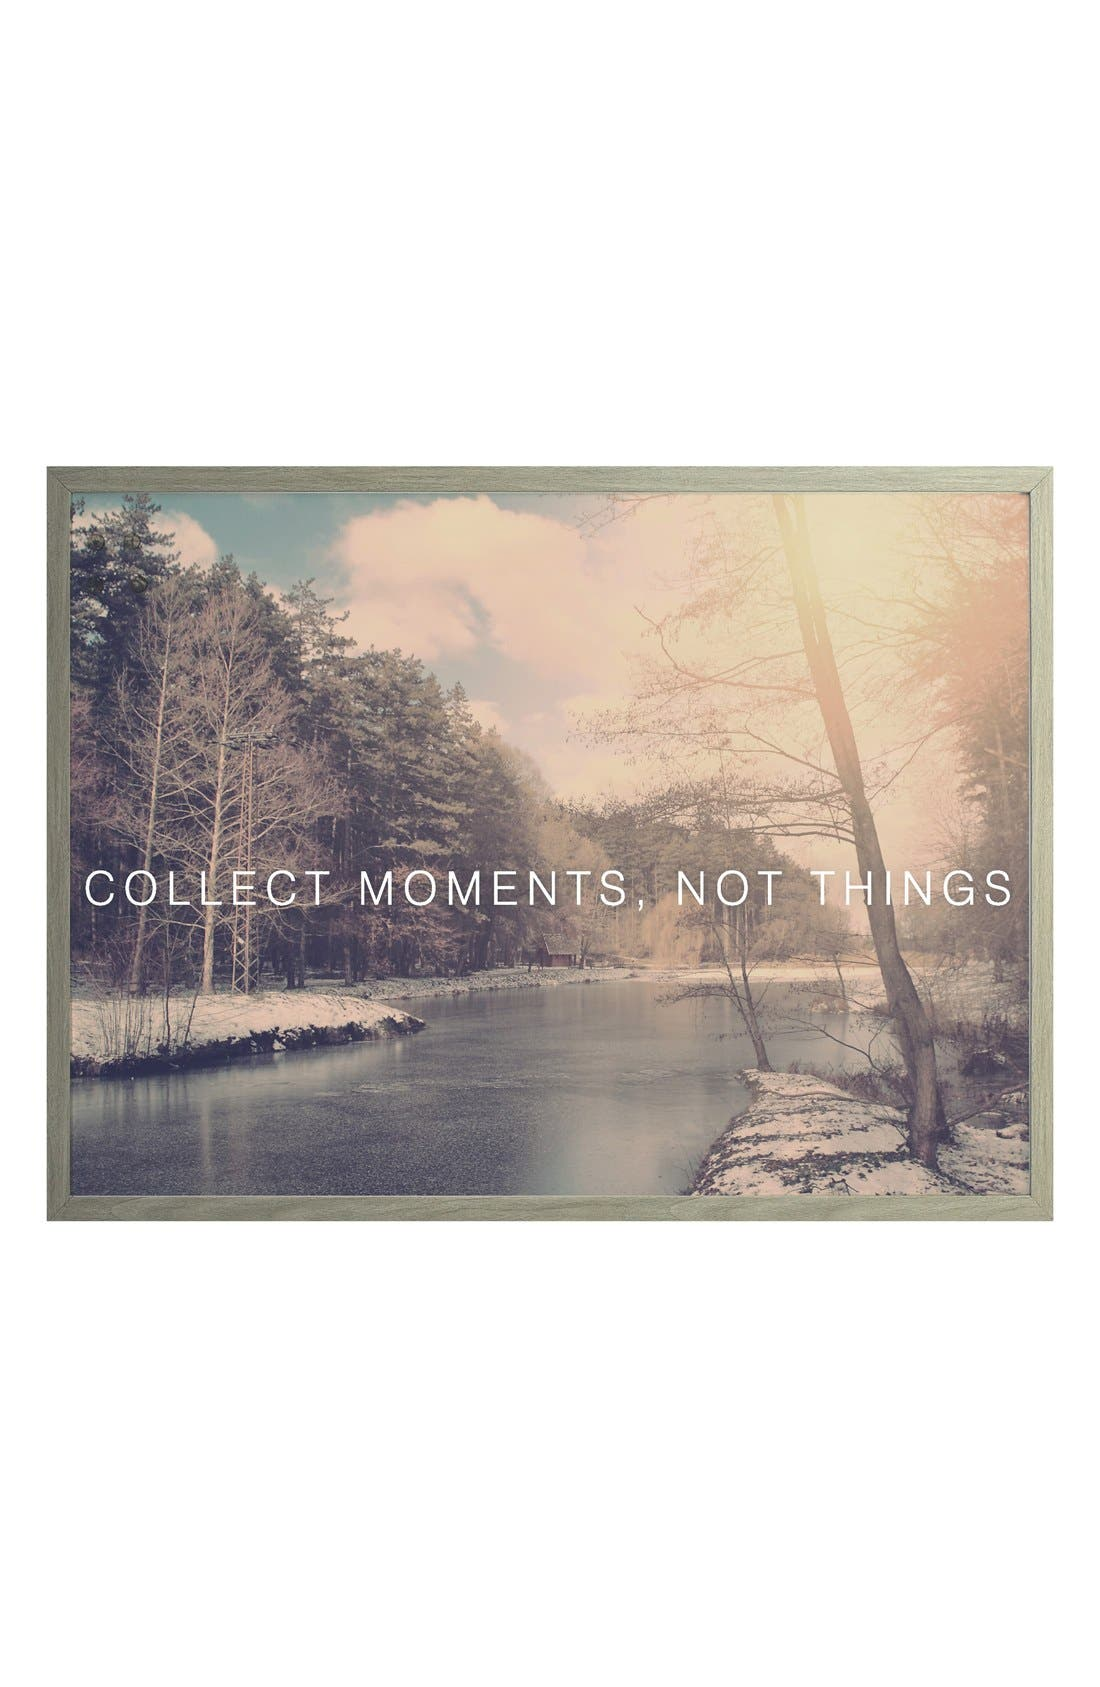 Alternate Image 1 Selected - Petal Lane 'Collect Moments' Magnet Board